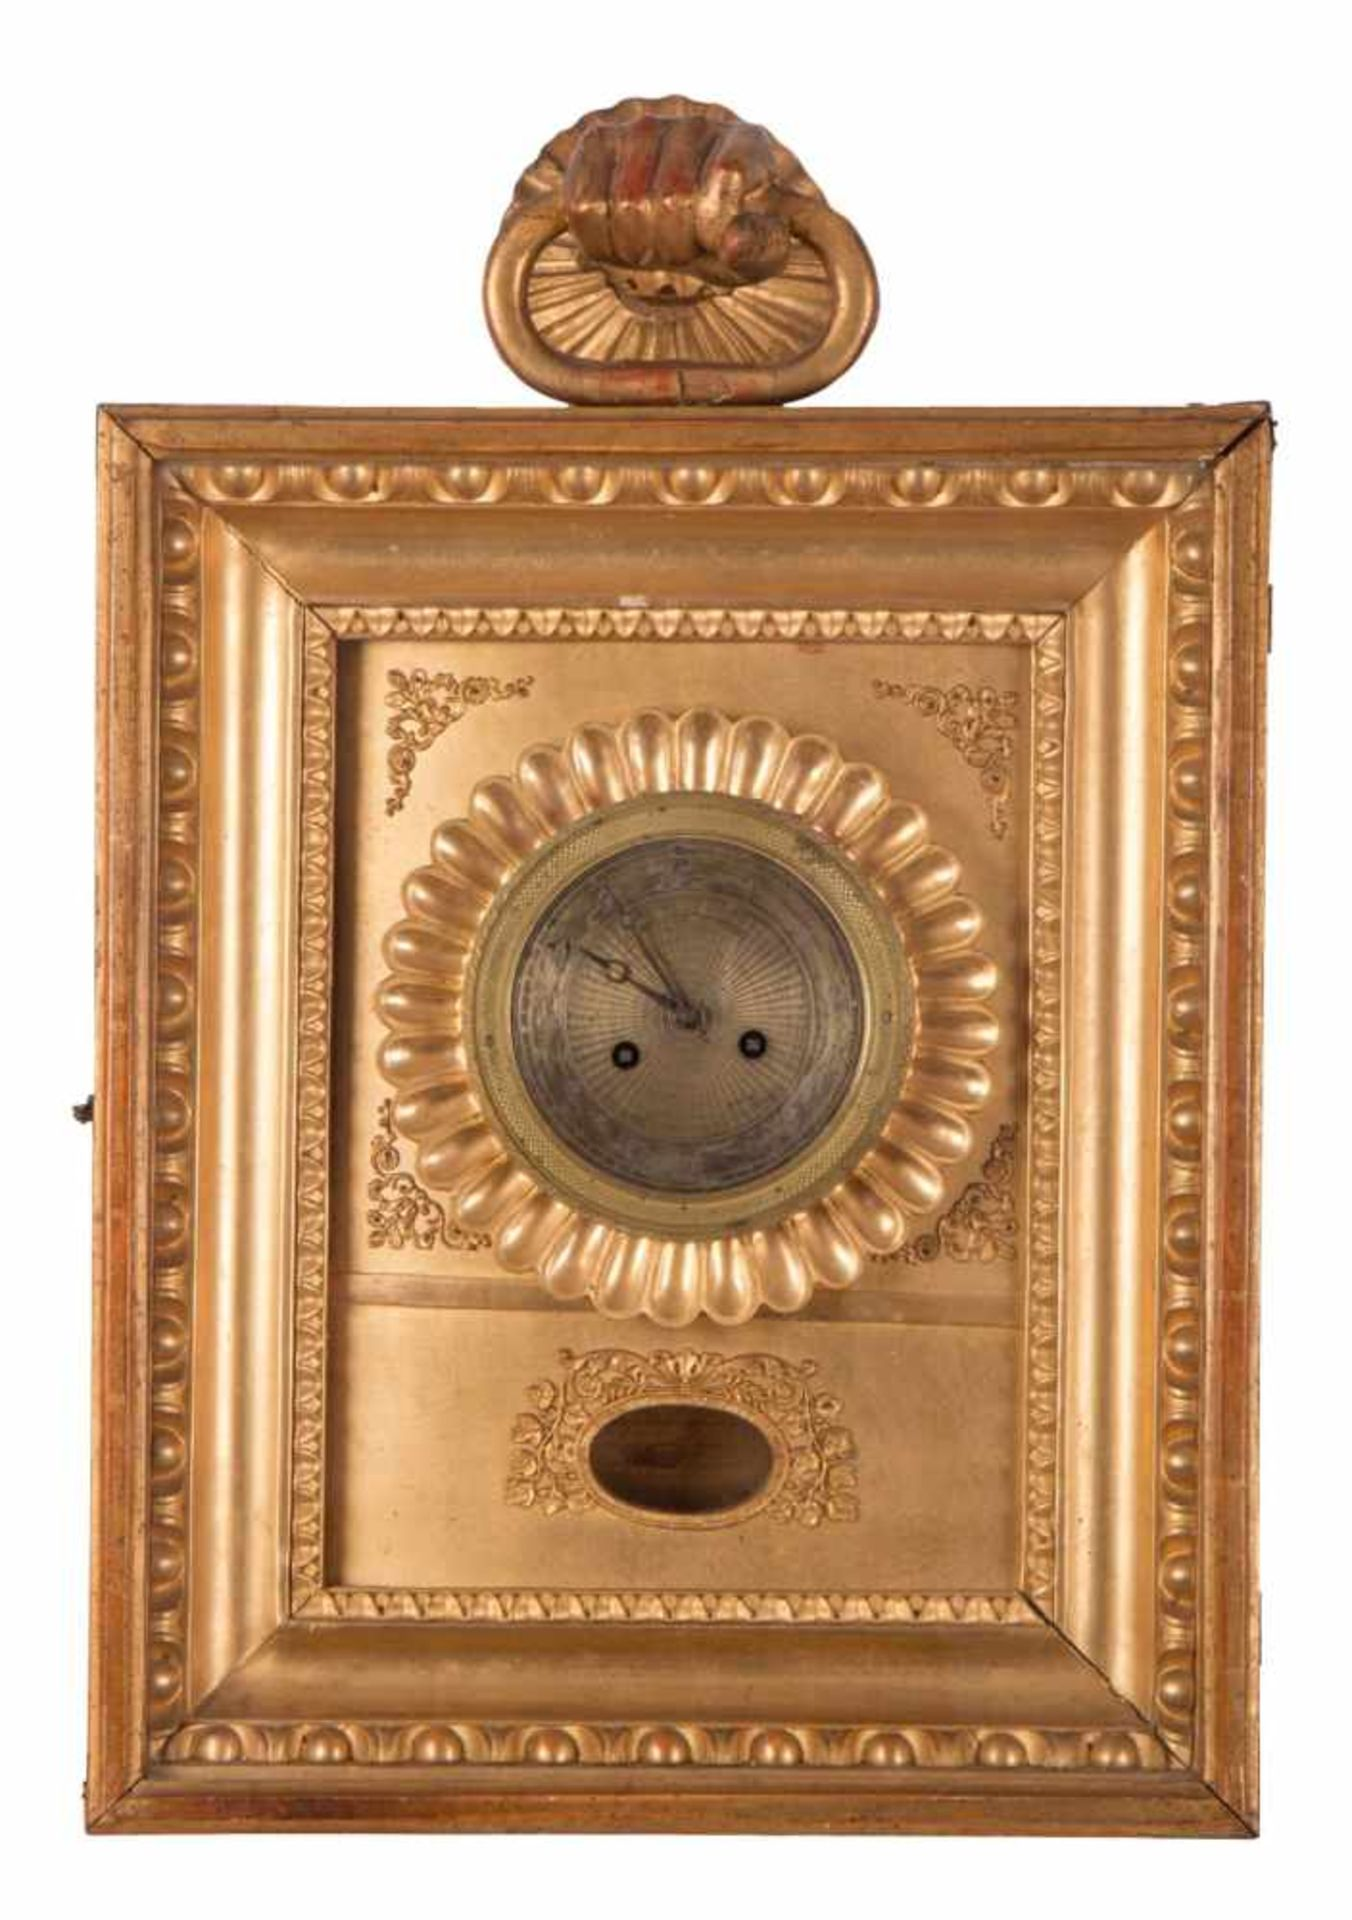 Los 74 - Frame clockBiedermeier frame clockVienna around 1830 | H 41 x W 34 x D 12 cm | Inscribed: ALOIS